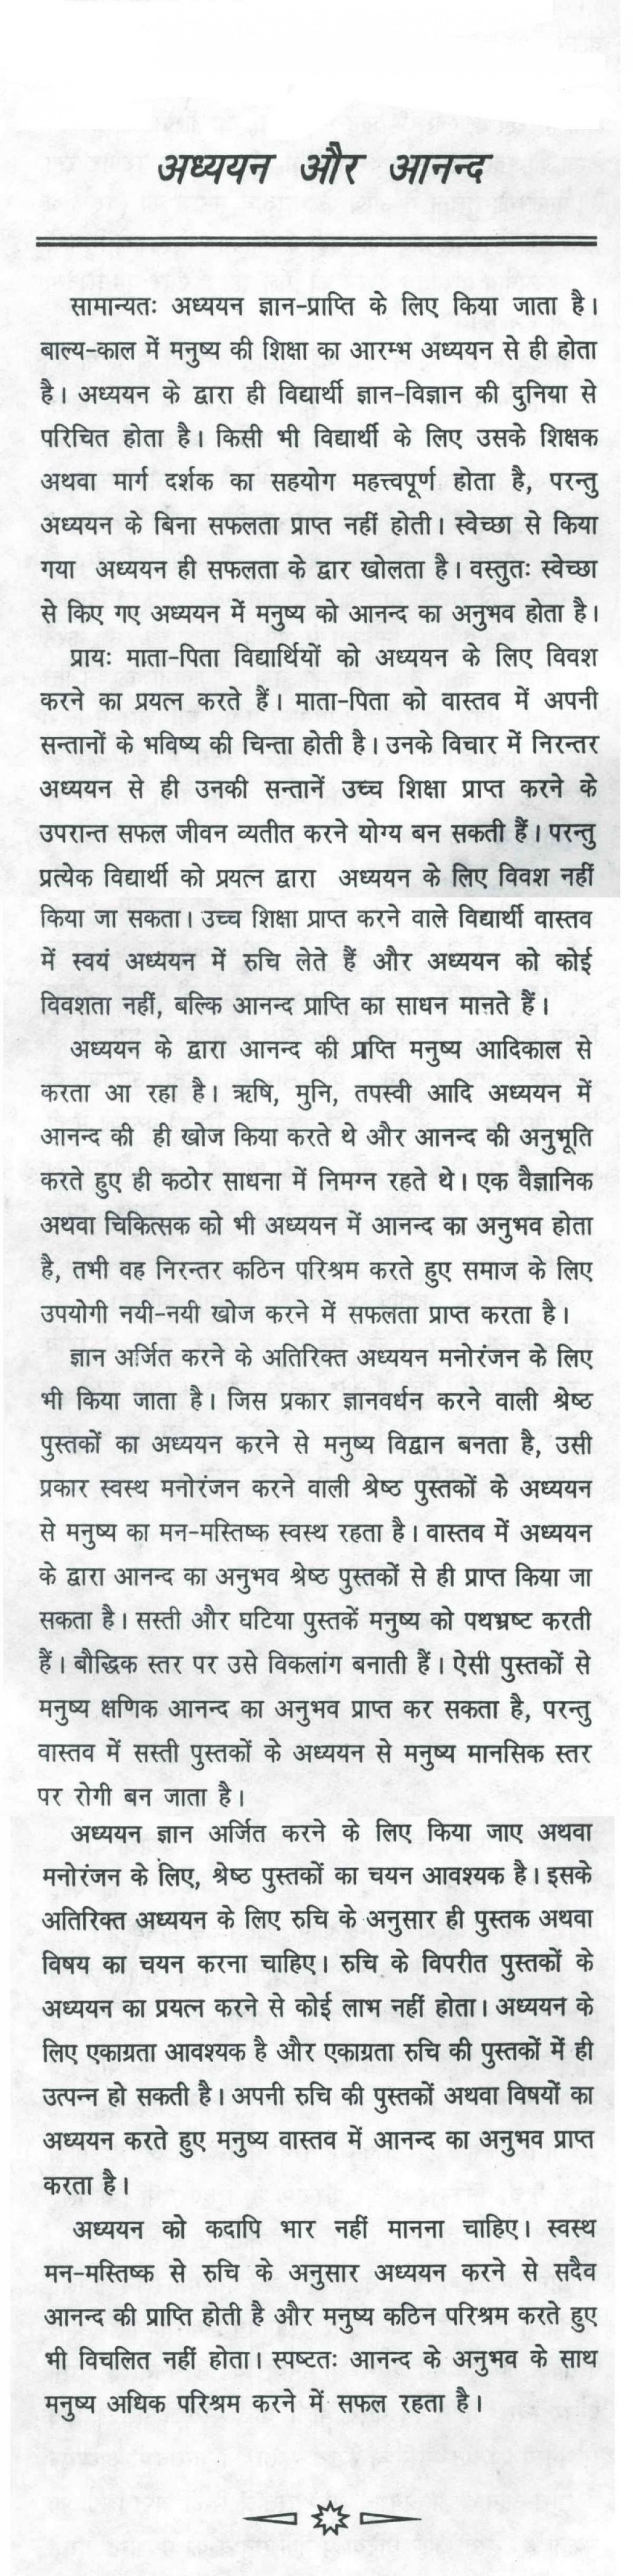 024 Books And Reading Essay Example On Pleasure Of In Hindi Close 10019 Poetry Outstanding Benefits Book English For Class 6 My Hobby 1920